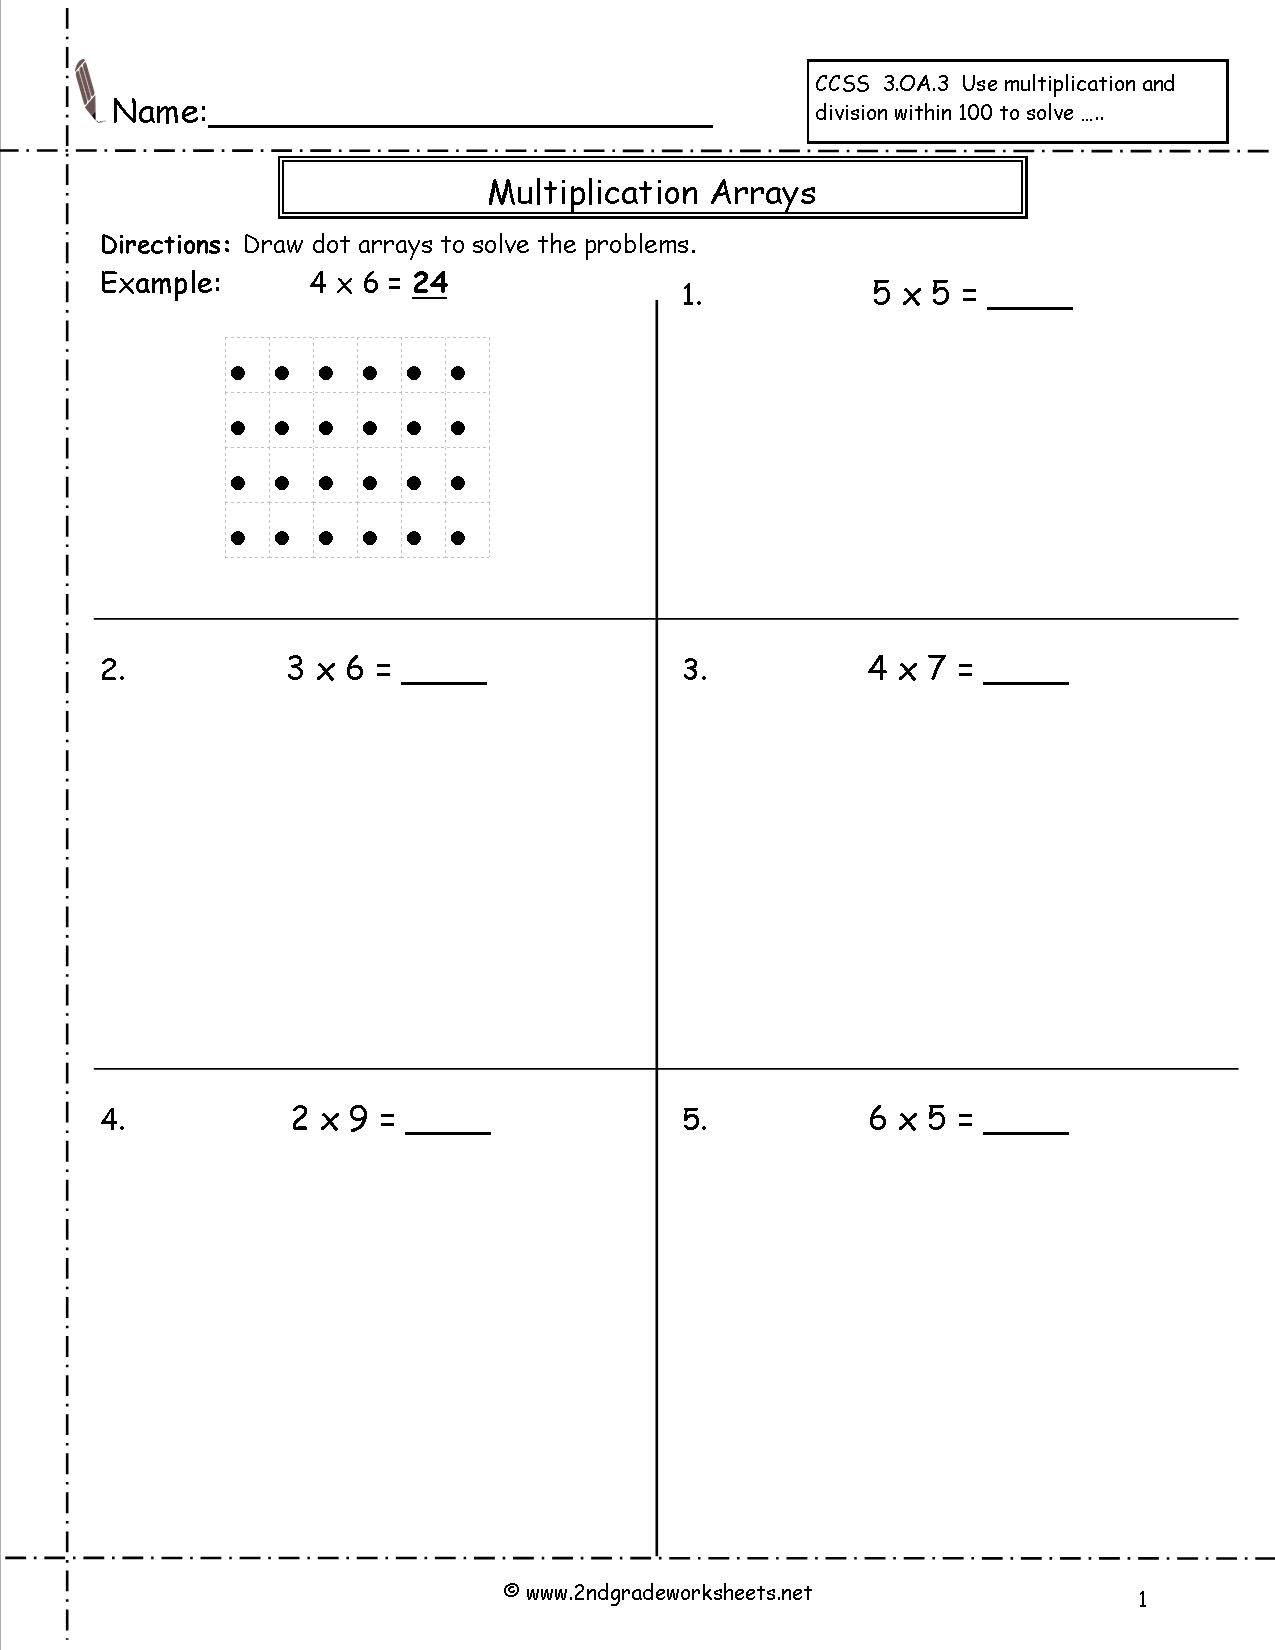 multiplication array worksheets  temporary board  pinterest  multiplication array worksheets maths class 2 worksheets also adding subtracting fractions worksheets add subtract multiply divide integers worksheet